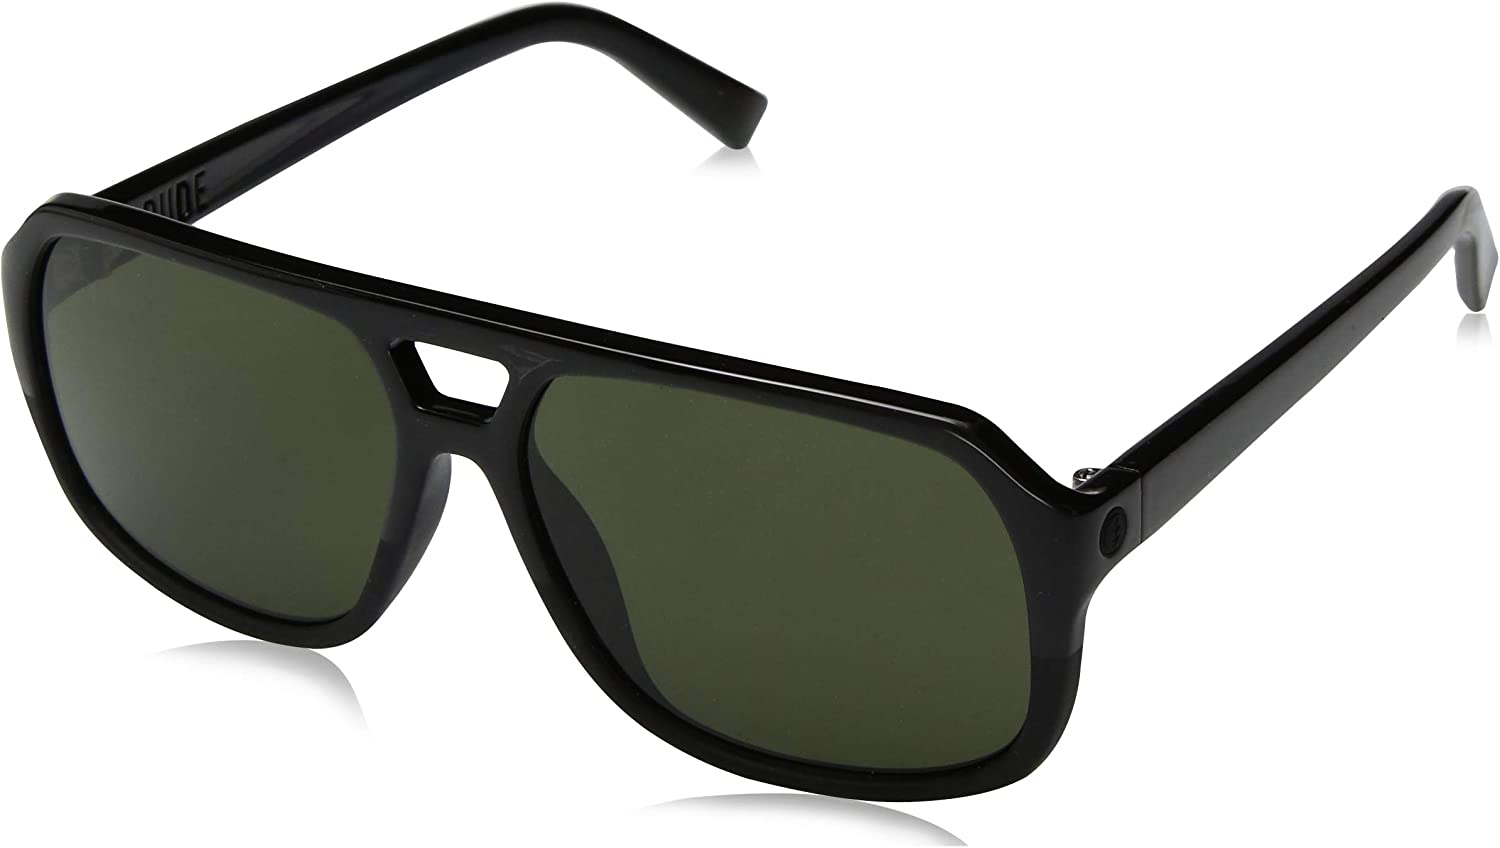 Electric Dude Rectangular Sunglasses Vader 60 mm